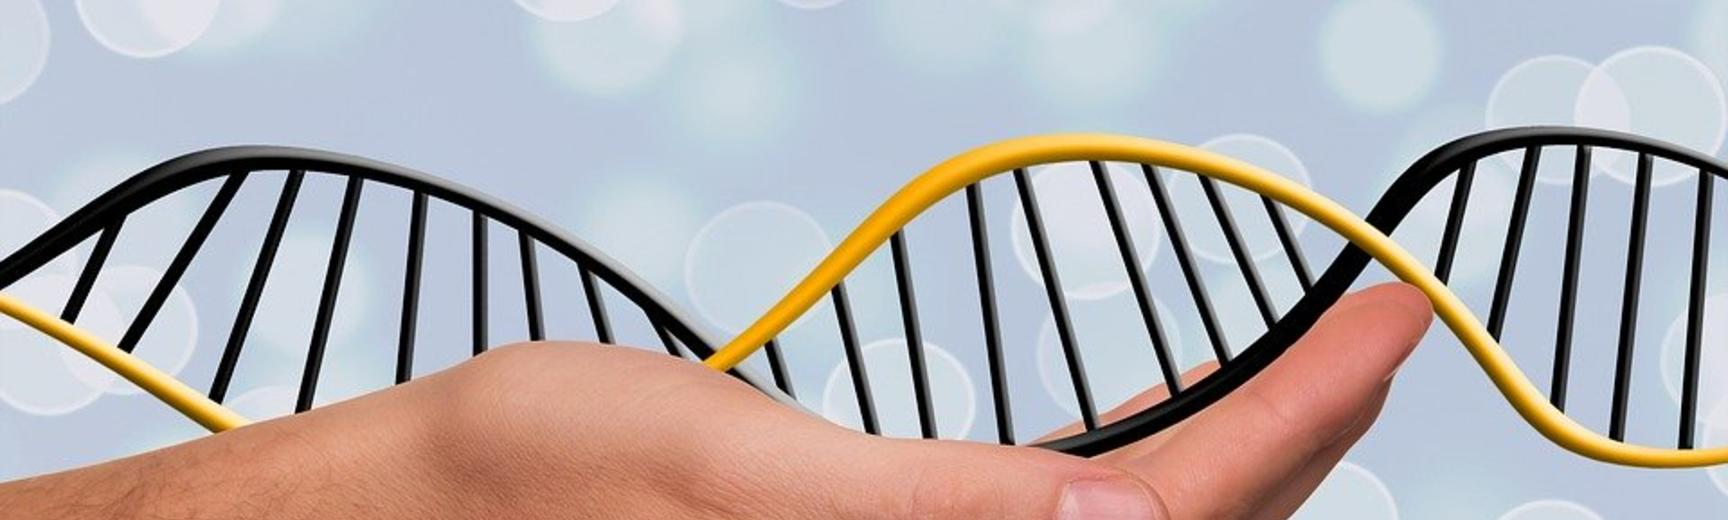 dna in hand